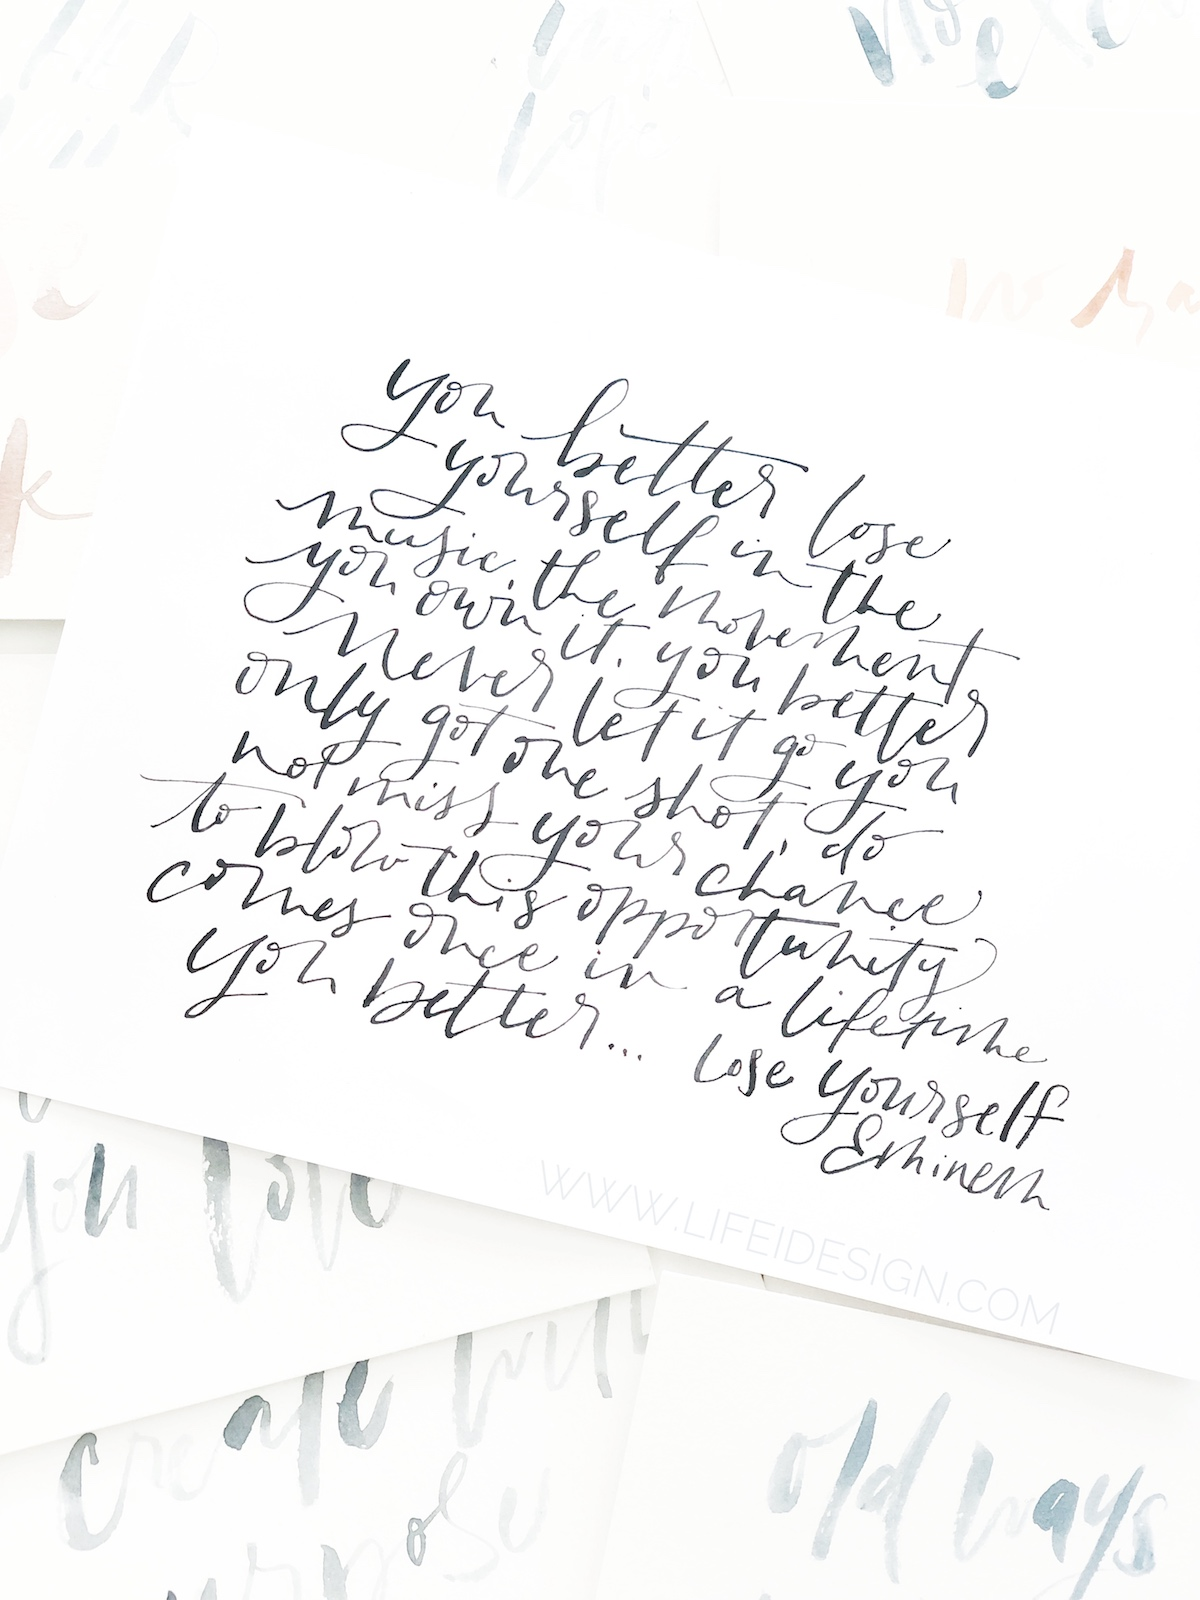 Write out some lyrics from a song that speaks to you to celebrate national handwriting day